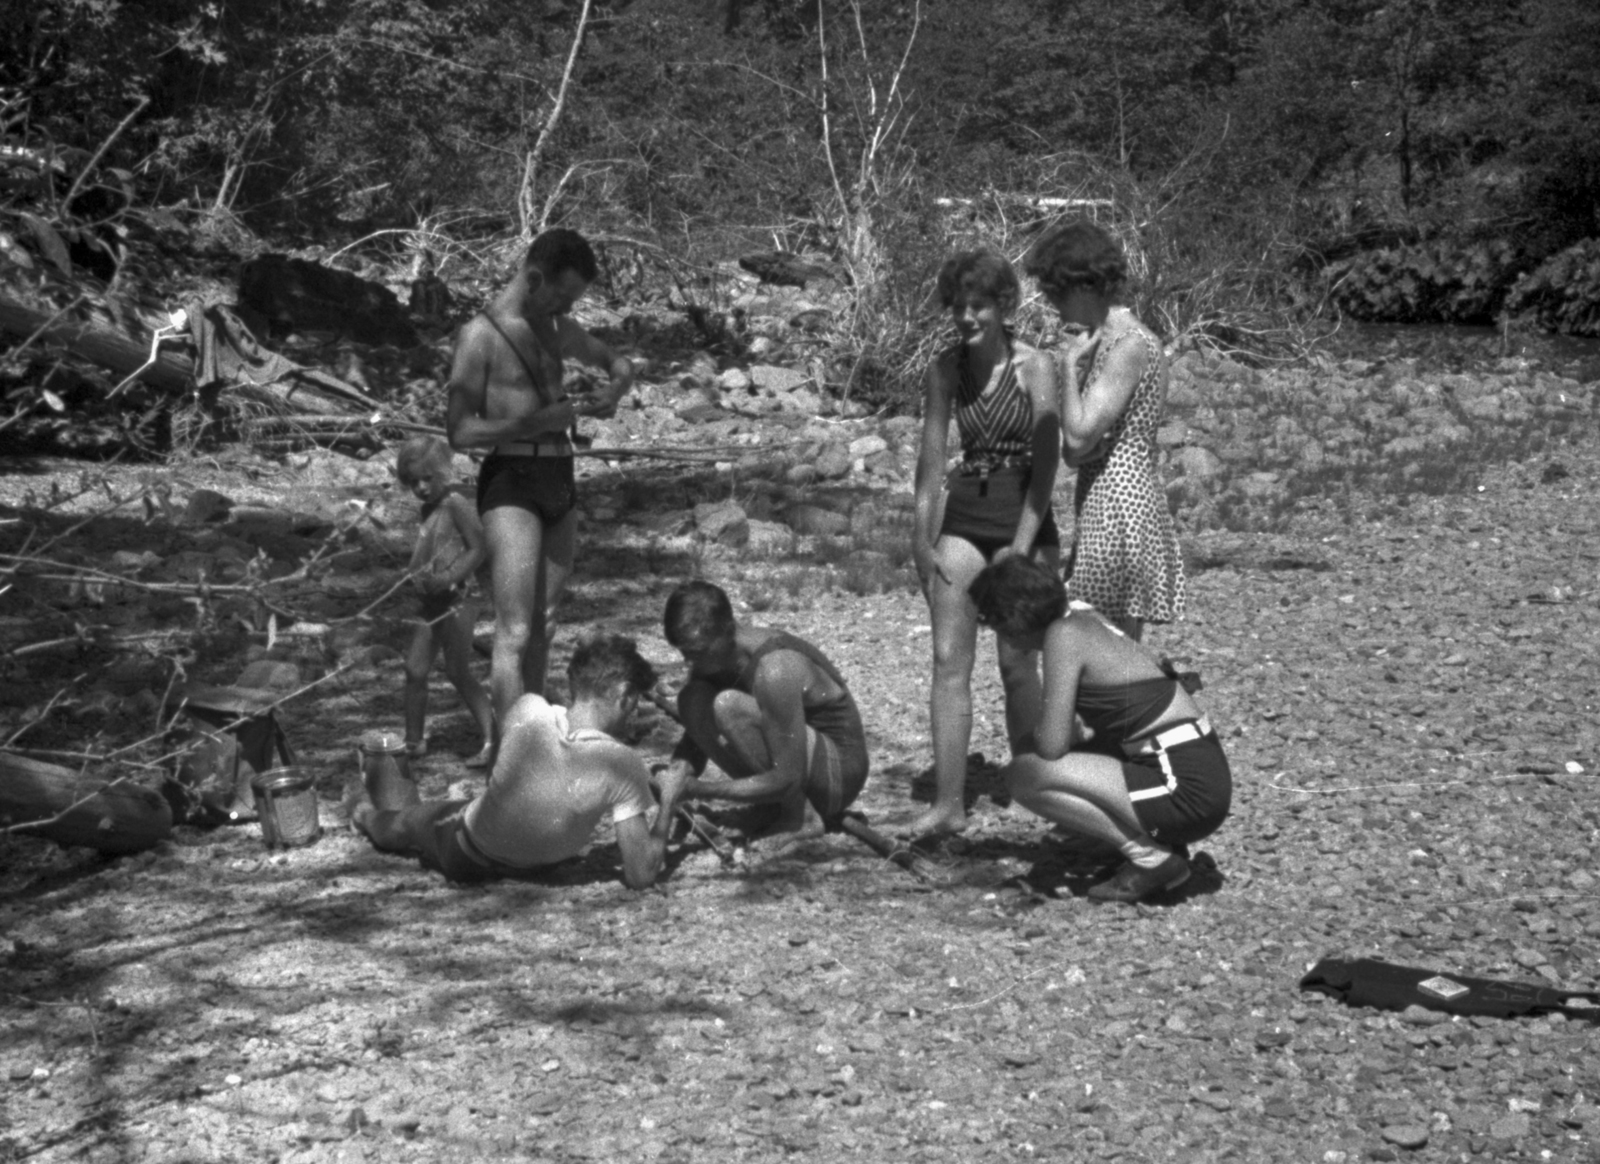 Franz N.D. Kurie (standing), Arthur H. Snell (laying down) and others at Trinity River. Cooksey  27-16, June 1, 1936. [Photographer: Donald Cooksey]